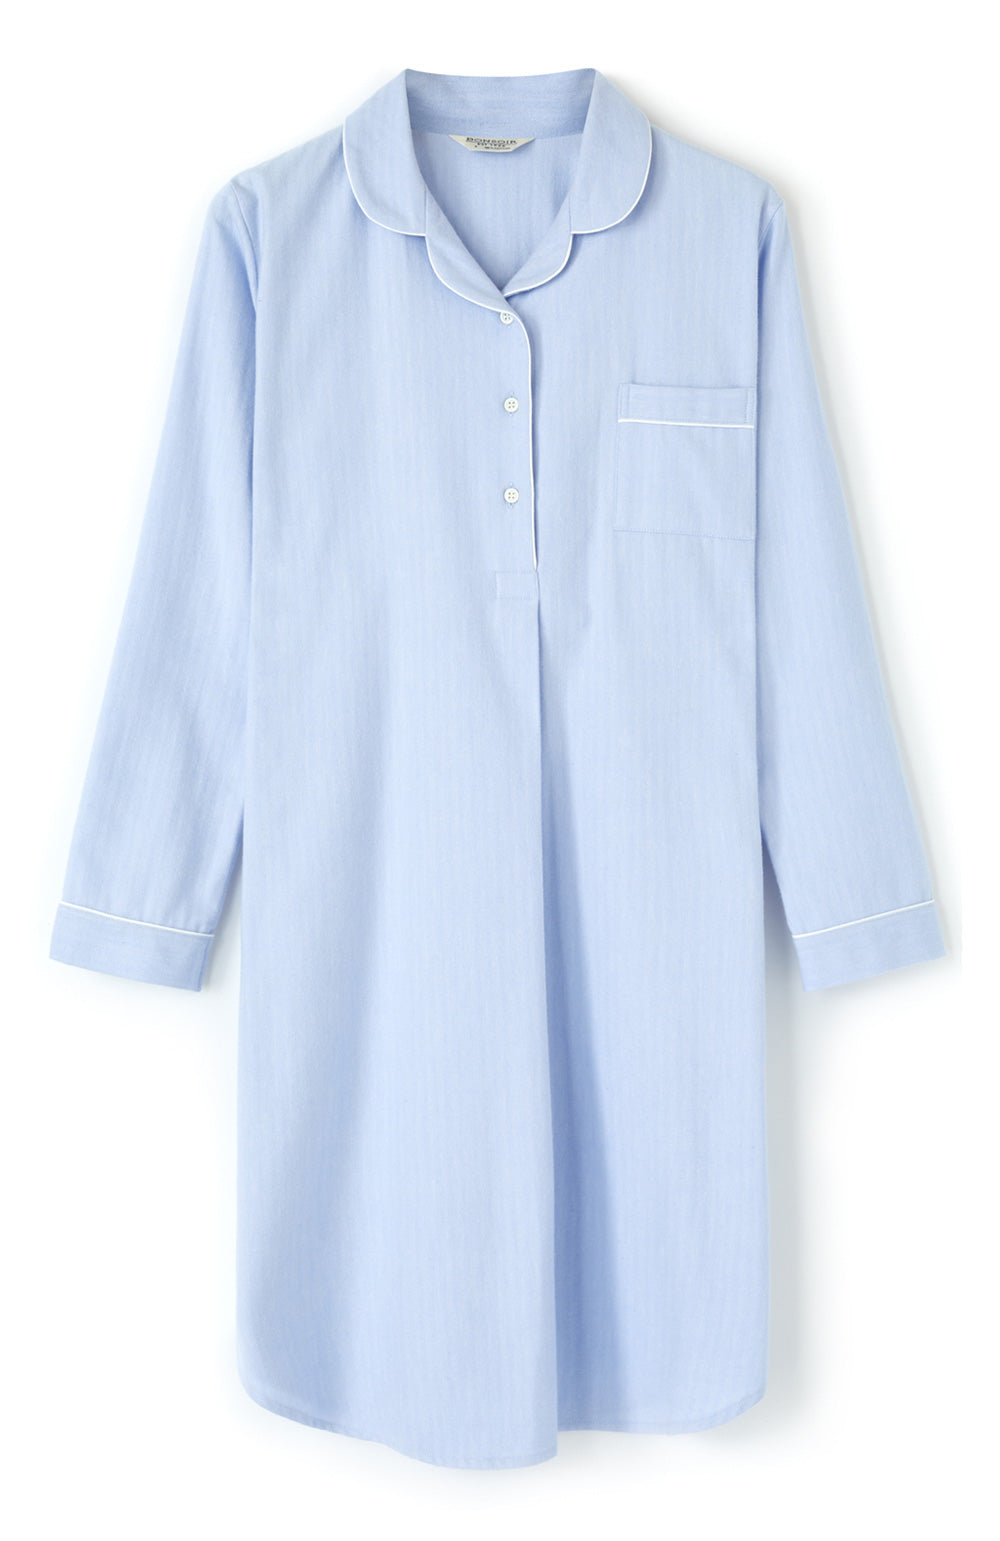 Women's Brushed Cotton Blue Herringbone Nightshirt | Bonsoir of London